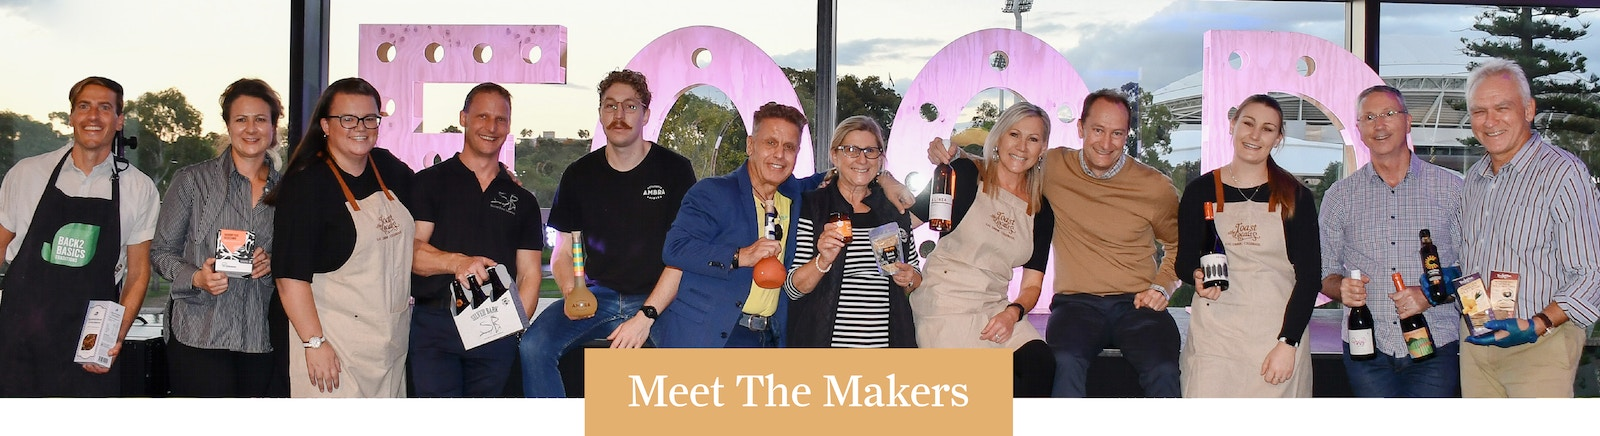 Meet the Makers Banner